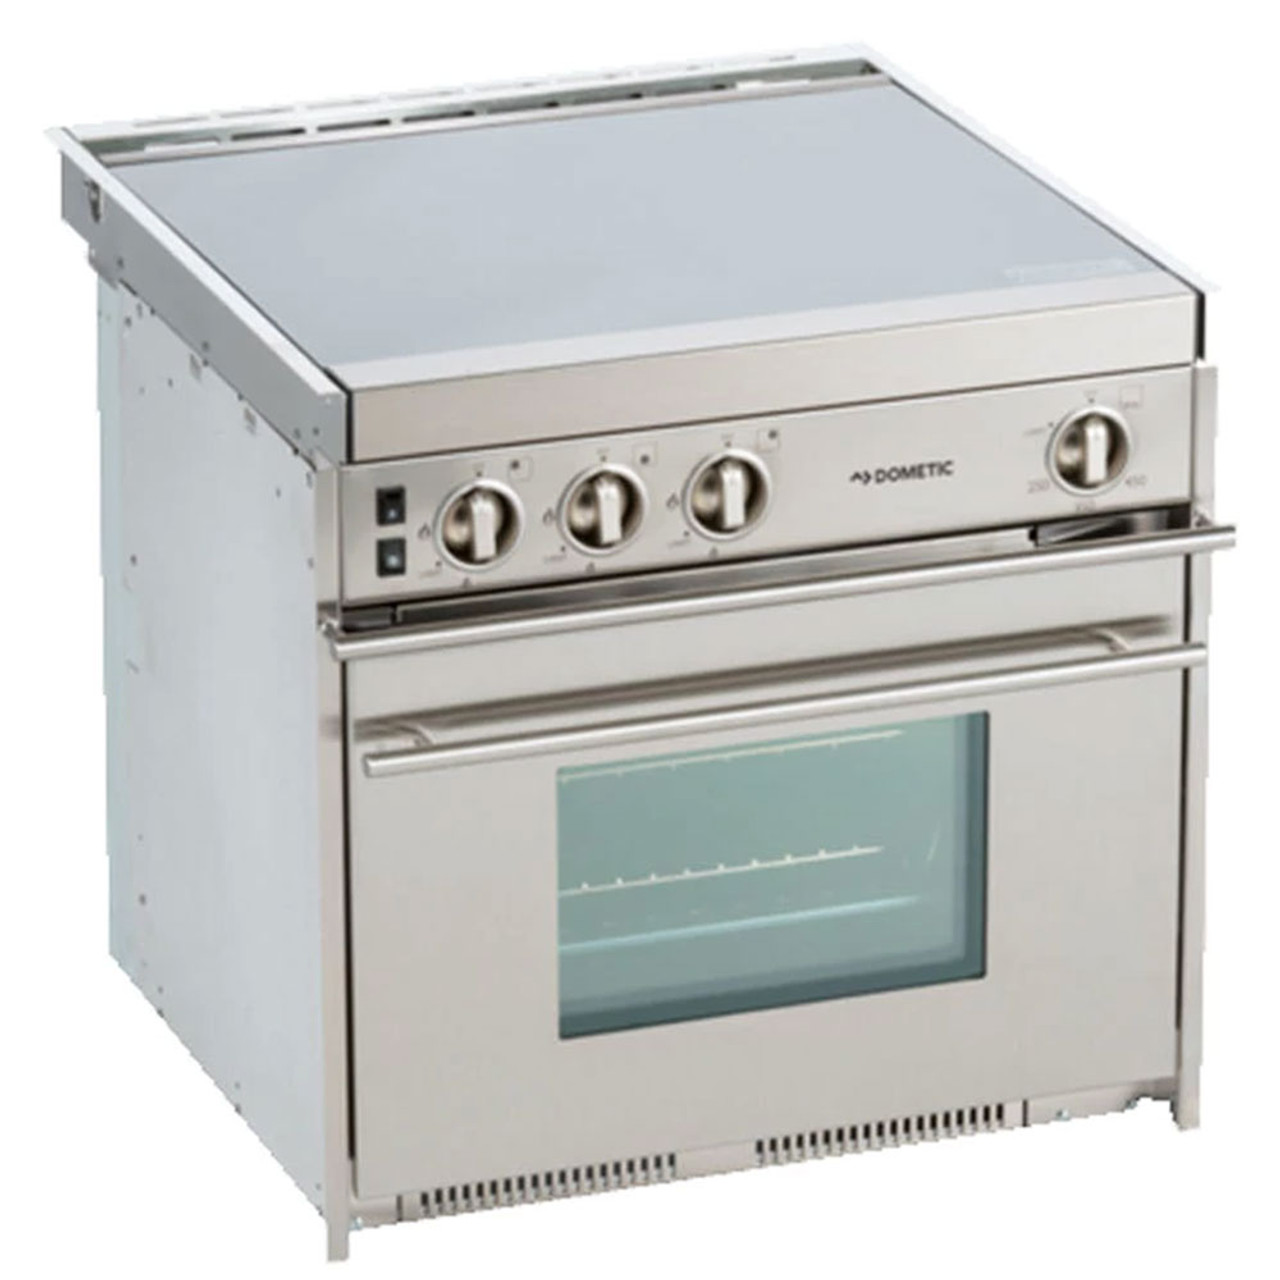 Wiring Diagram Rv Propane Oven - Wiring Library